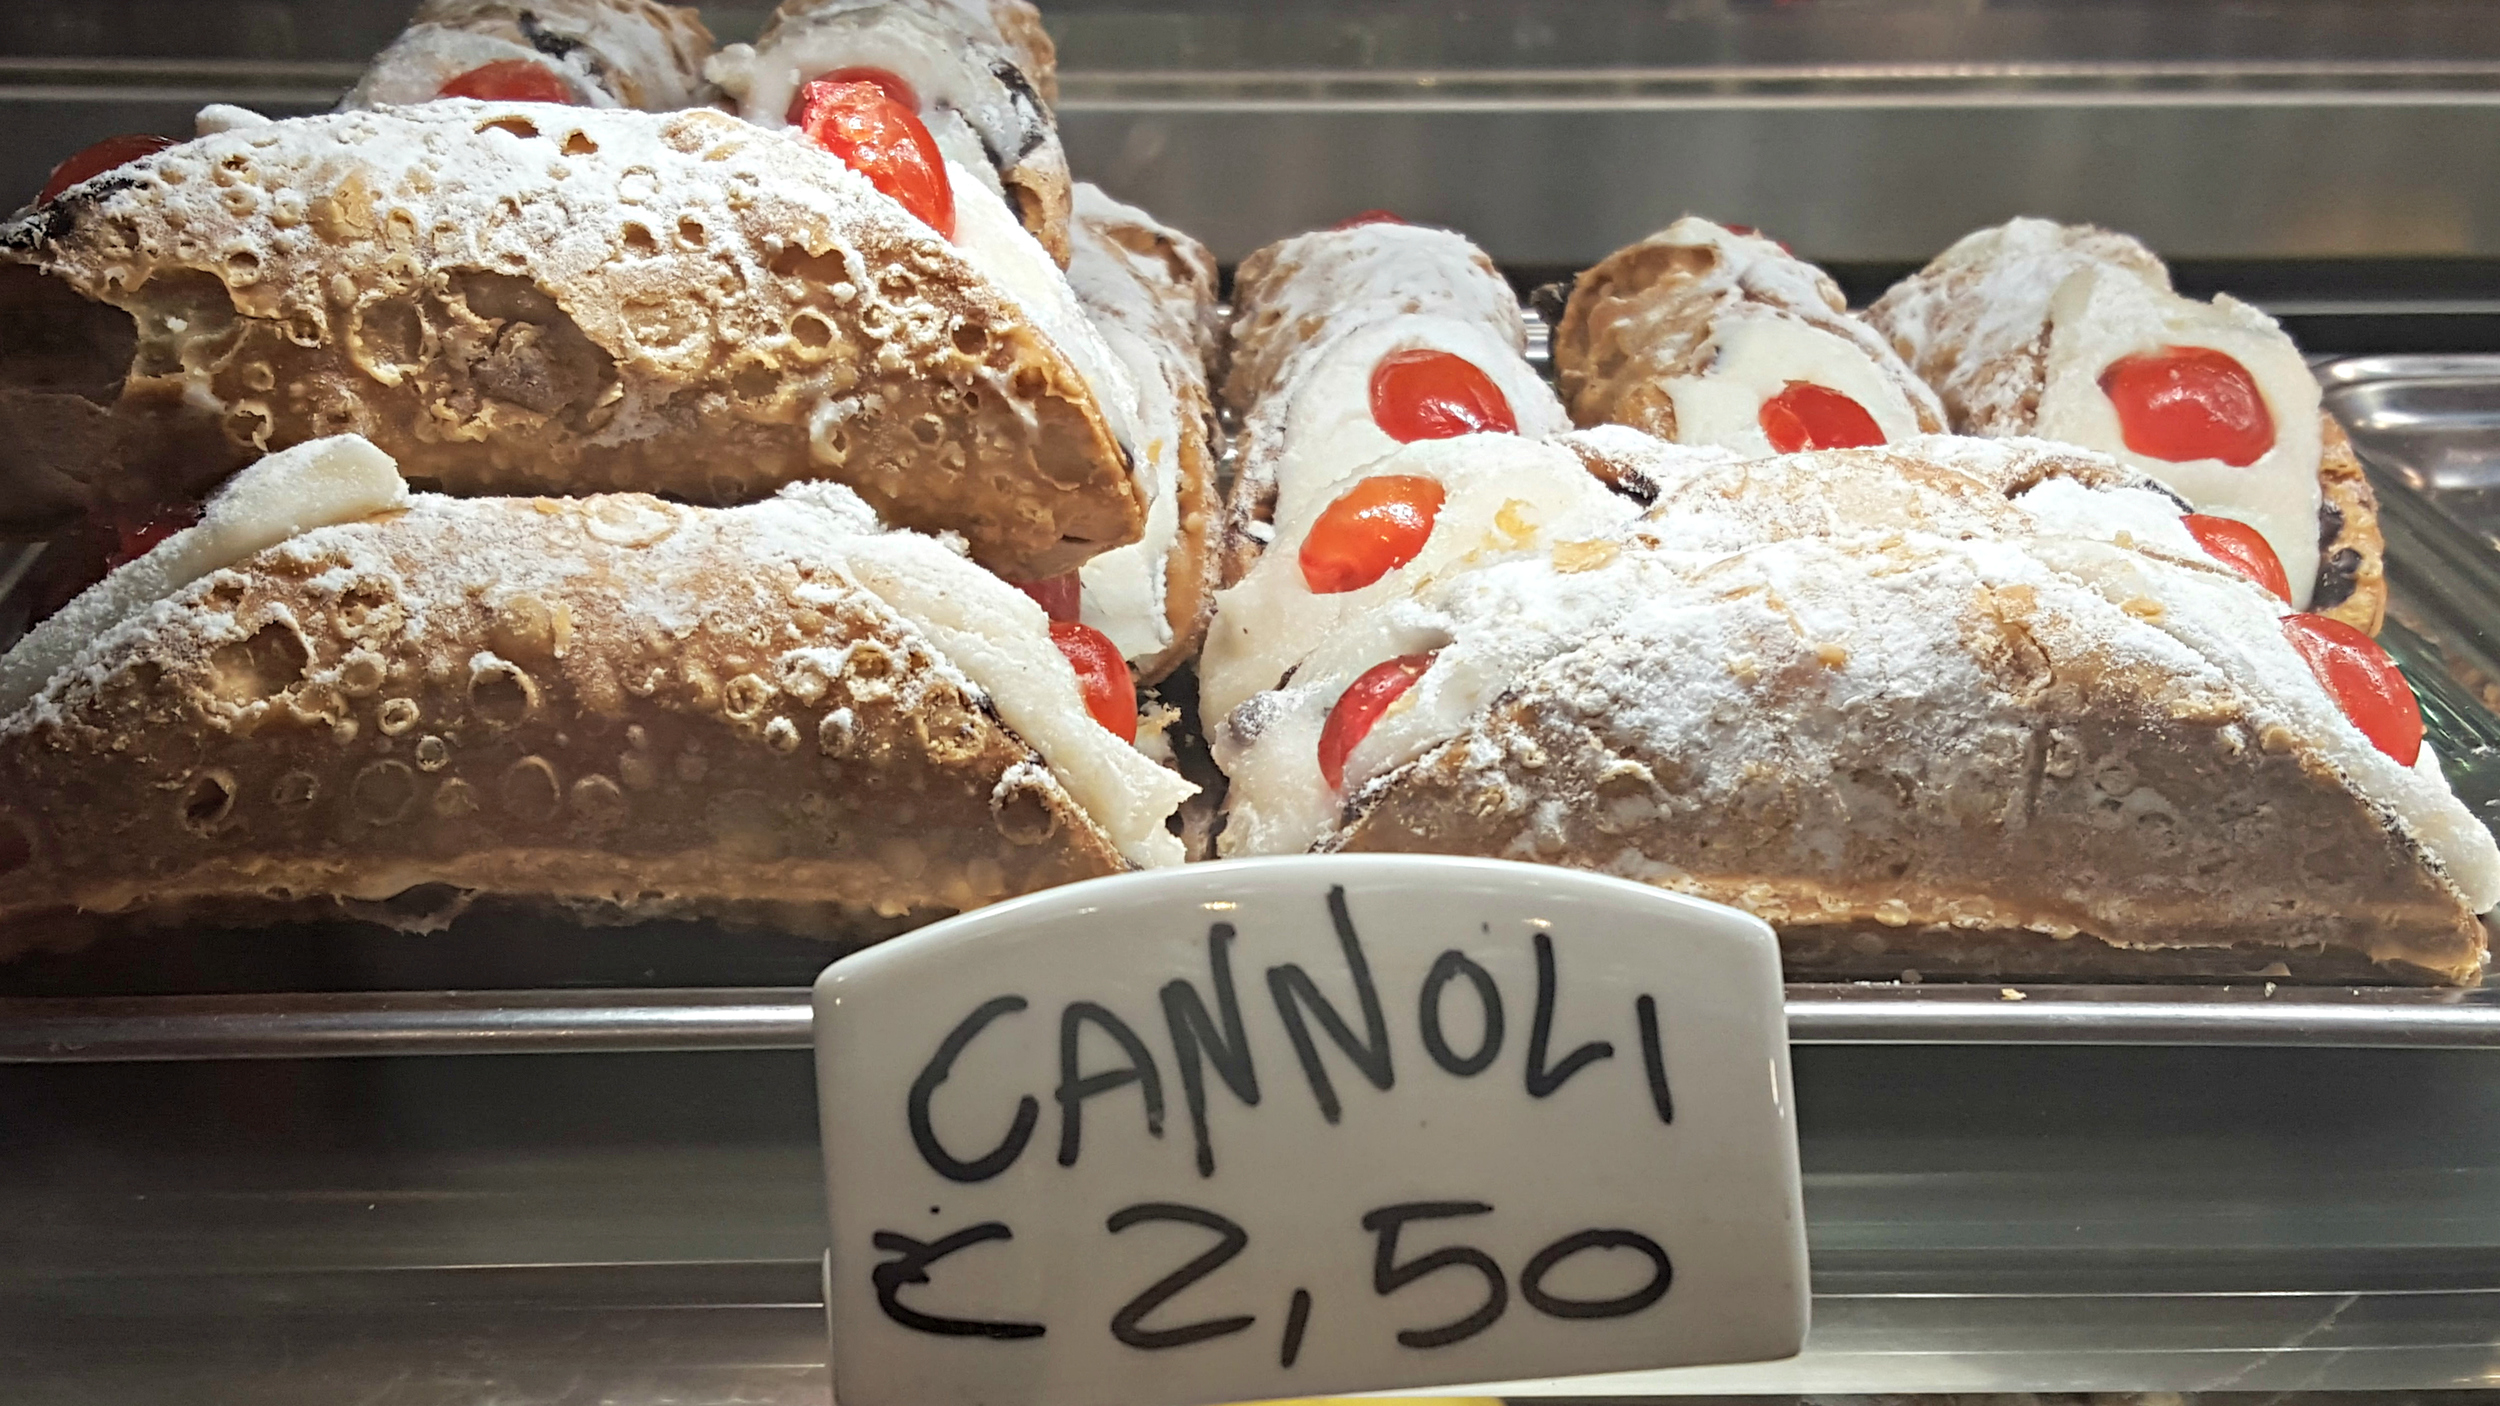 One of the richest, sweetest treats in Italy - Cannoli